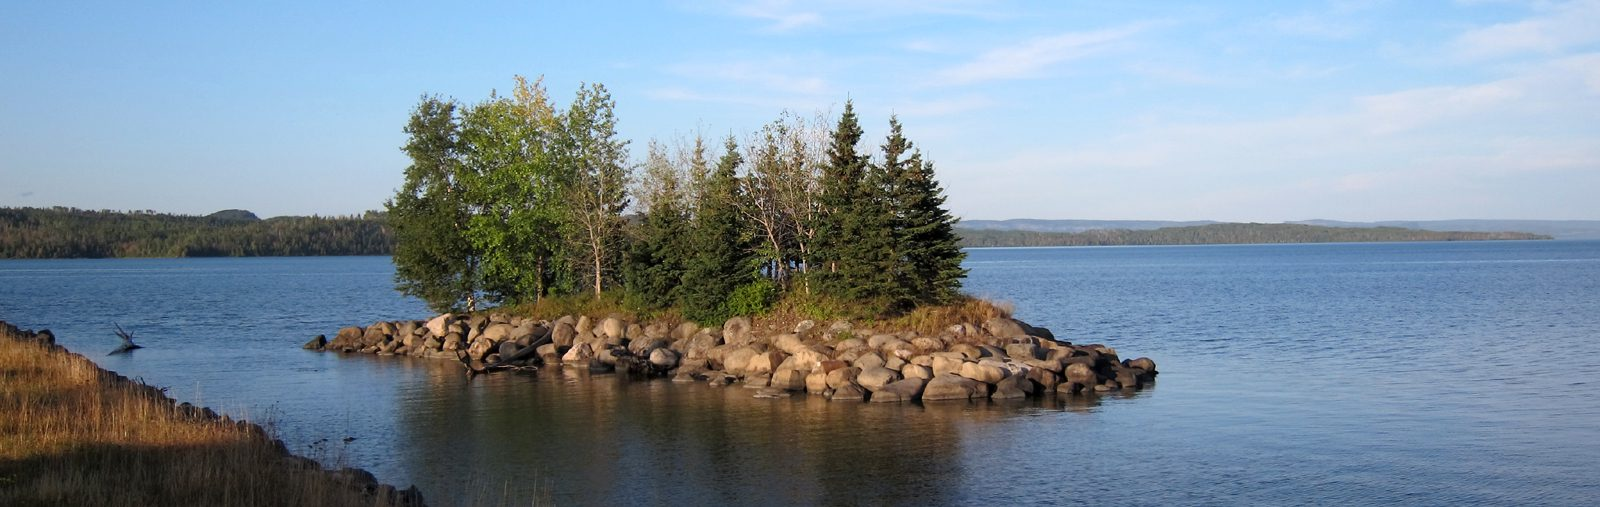 Northern Ontario Island in a lake